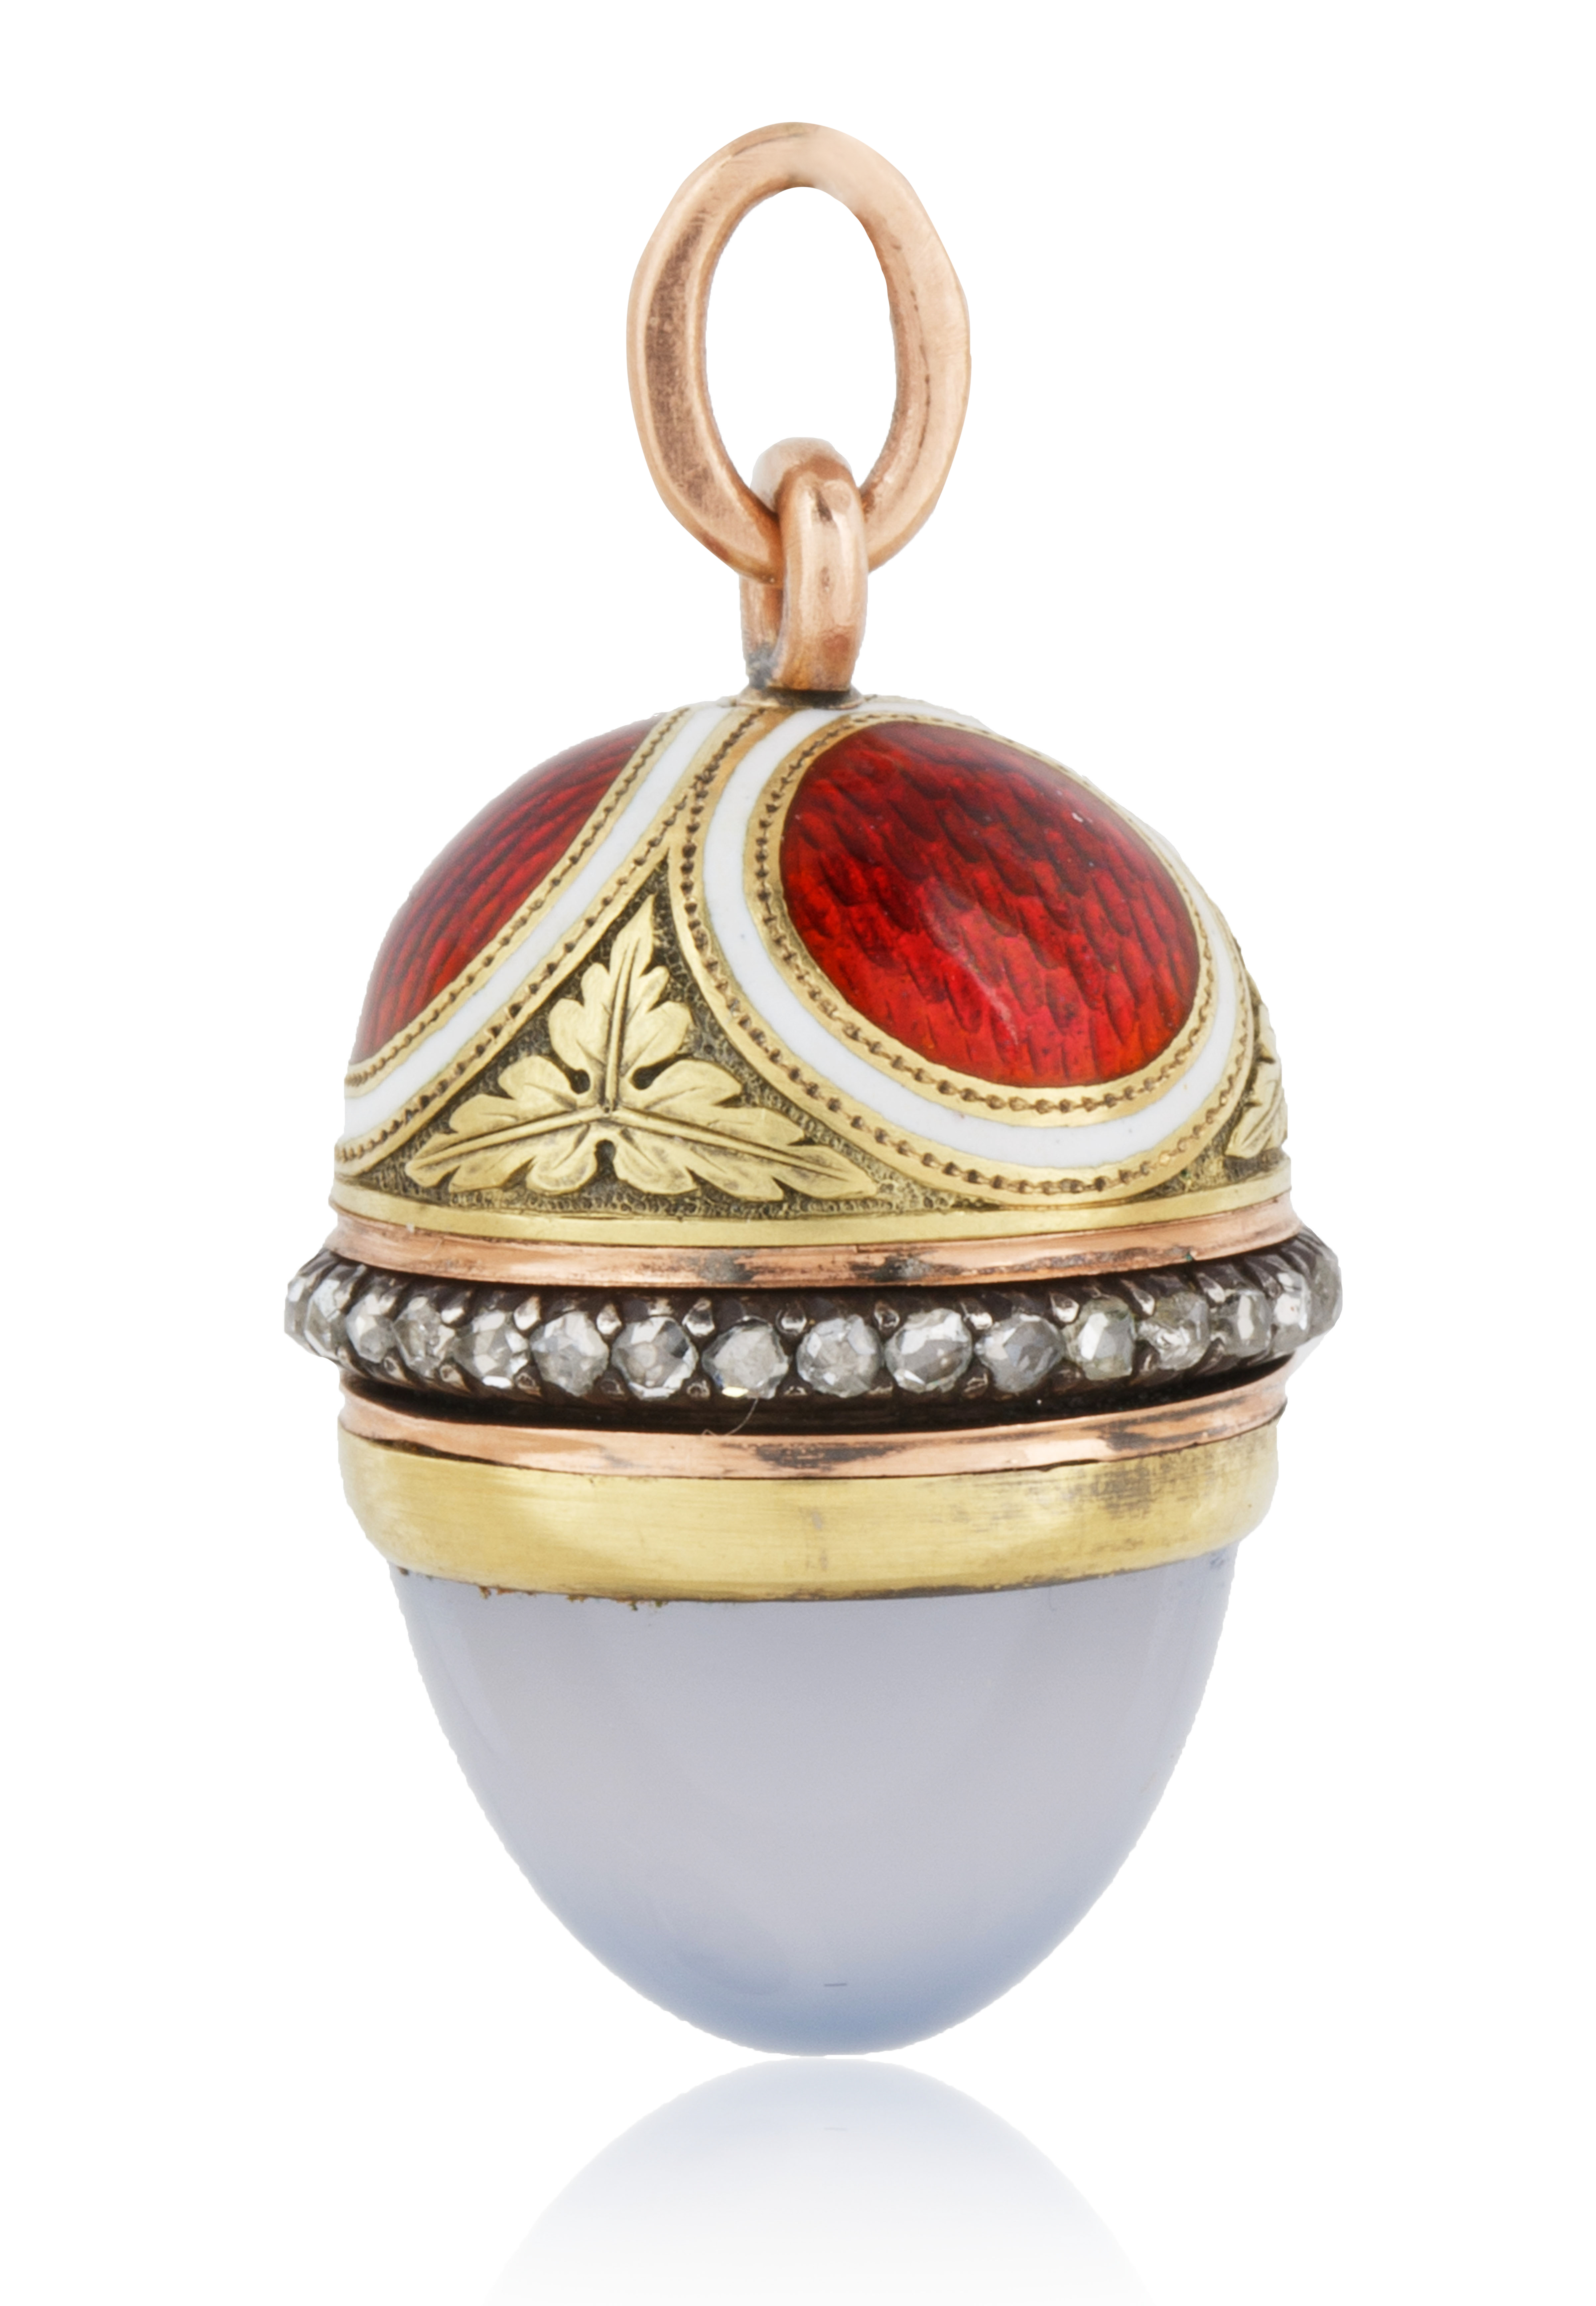 A 1908-1912 FABERGE AUGUST HOLLMING RUSSIAN GOLD, DIAMOND, MOONSTONE AND ENAMEL EGG PENDANT, ST. PET